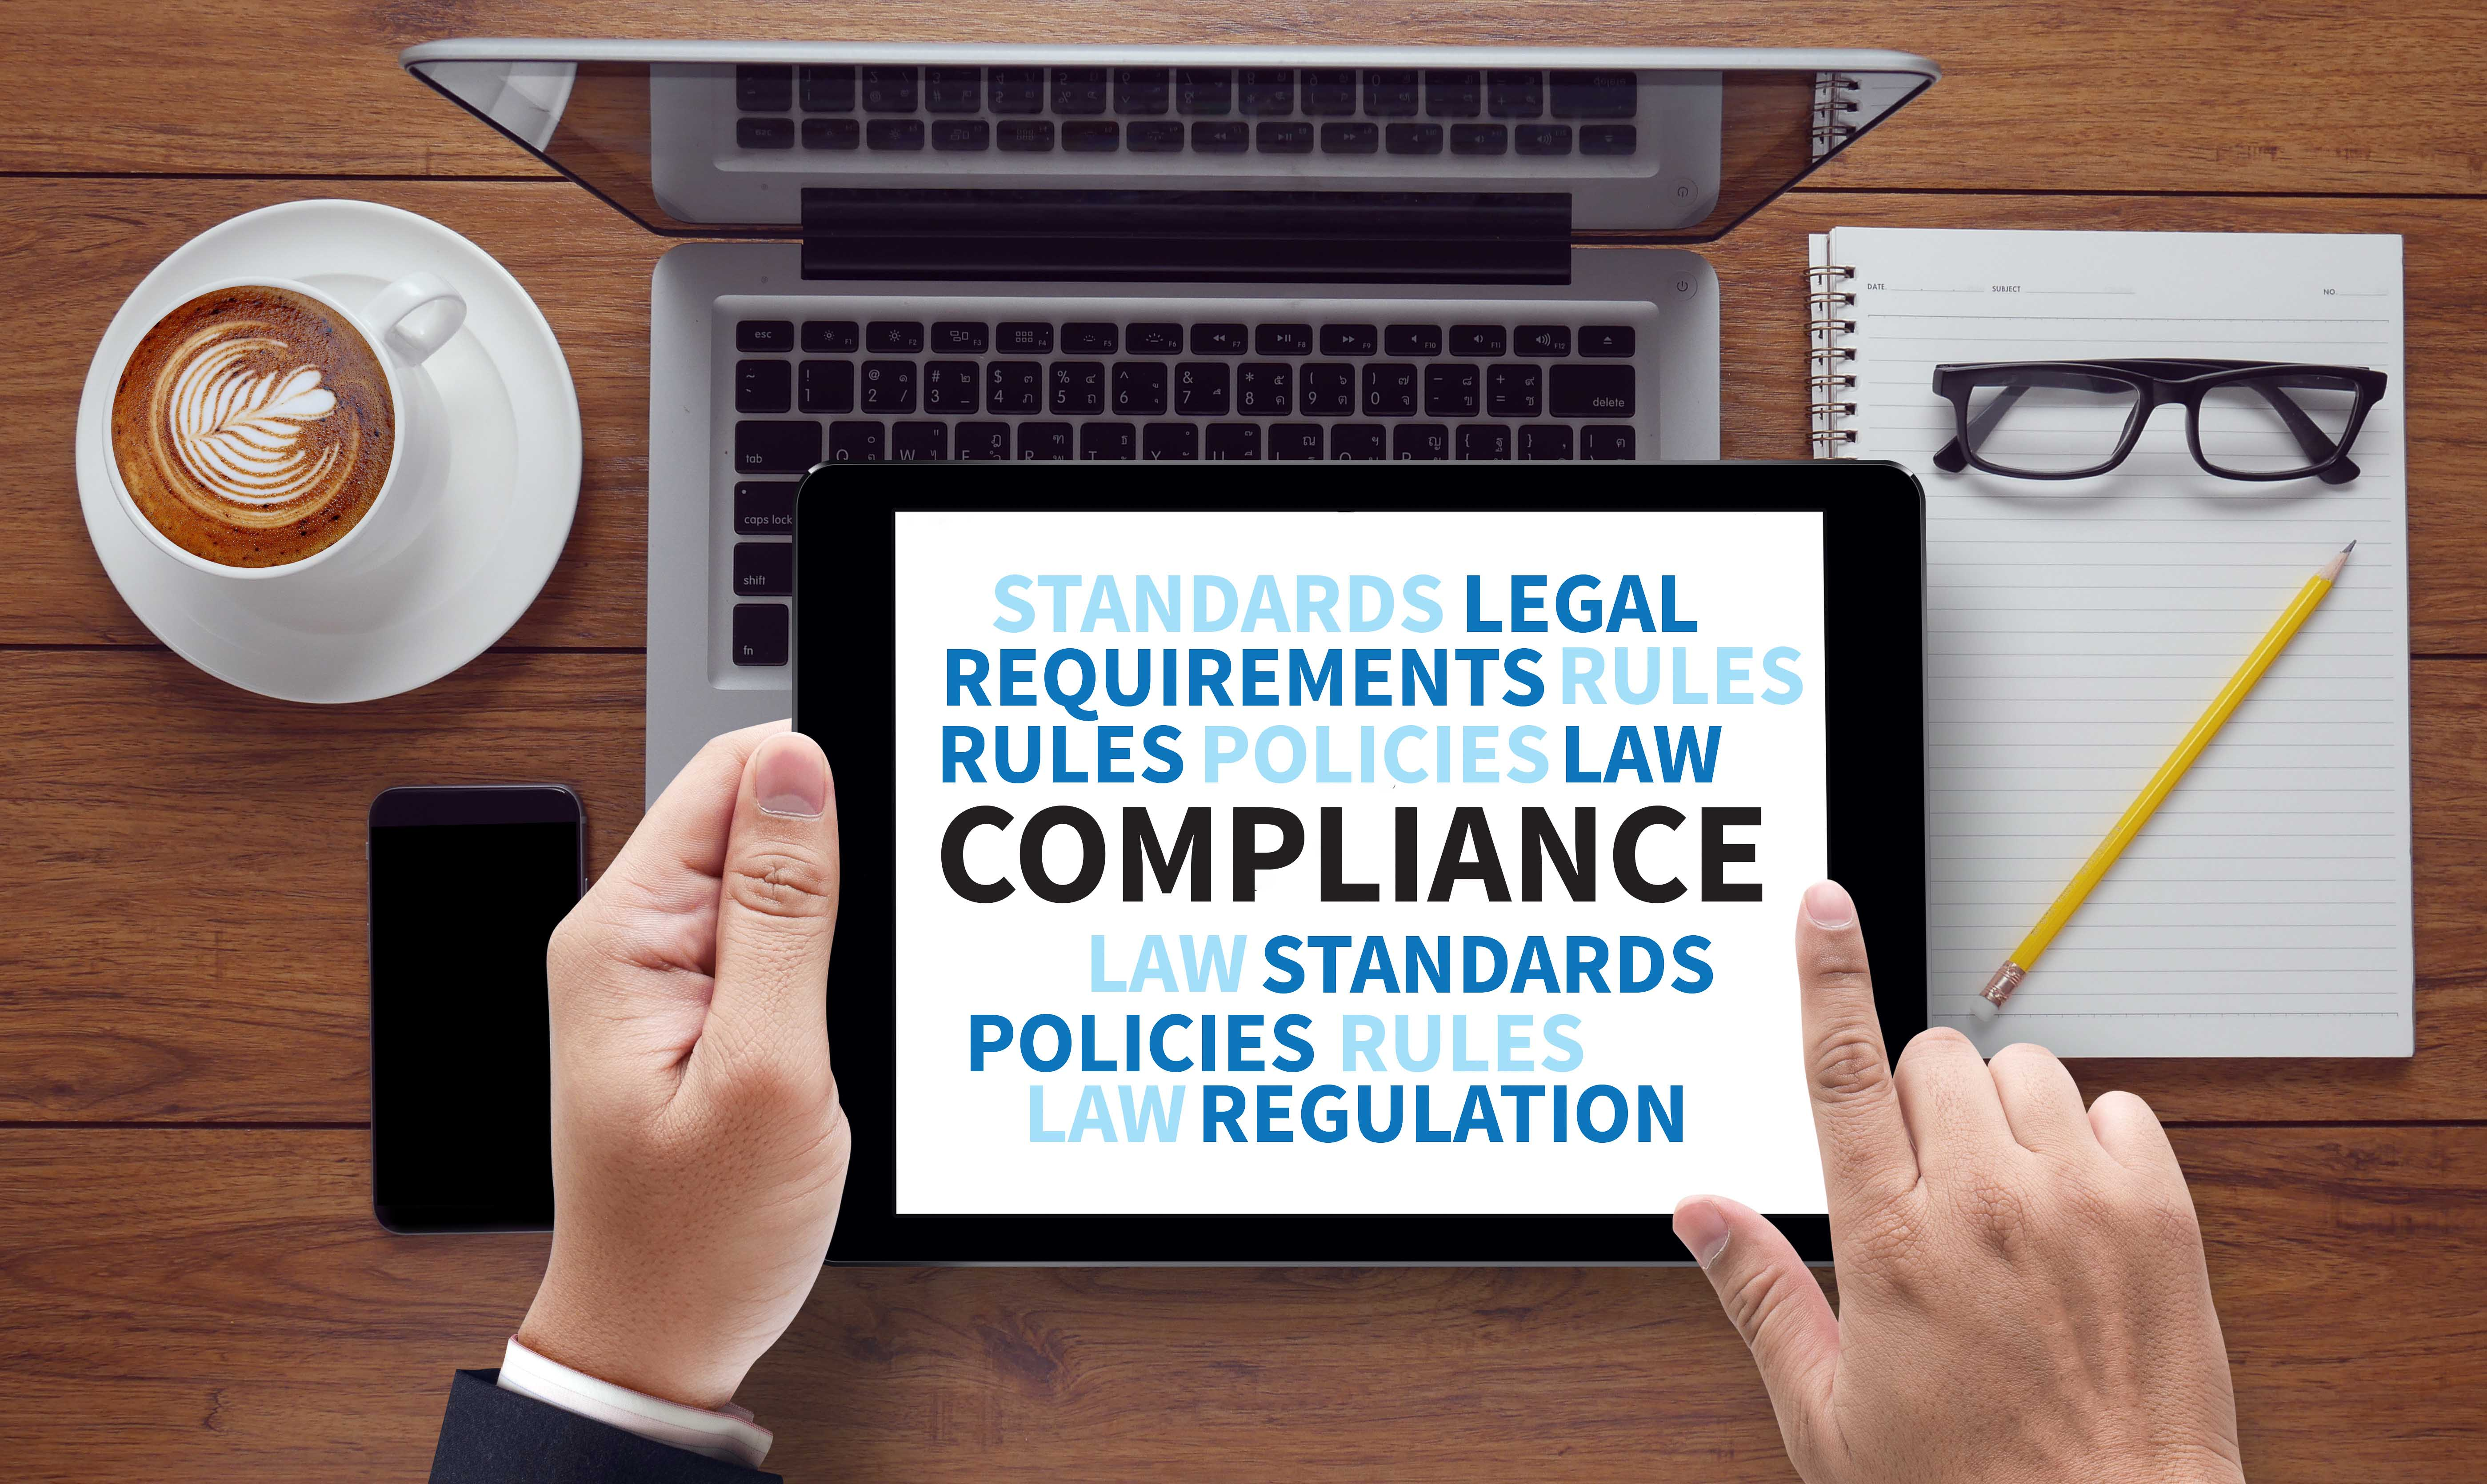 How to Stay in Regulatory Compliance, Without all the Paperwork